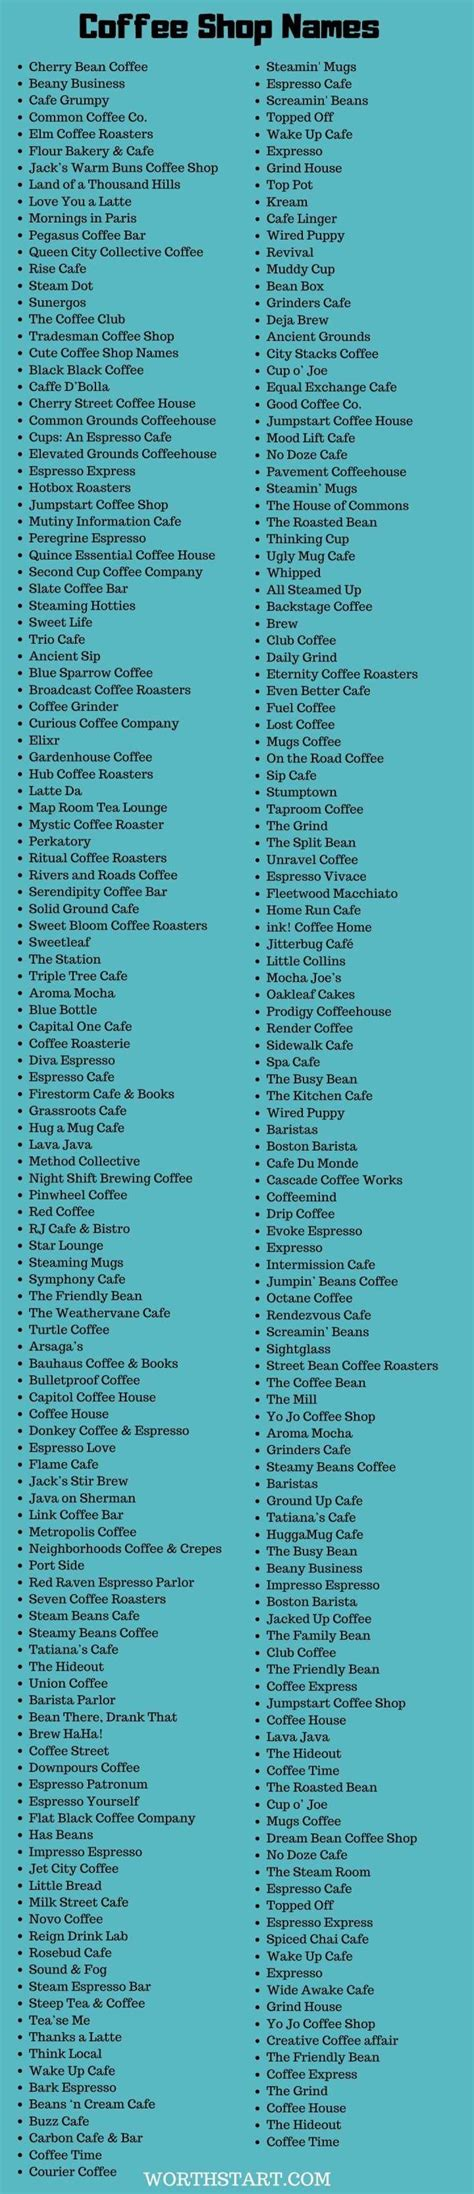 500 Inspiring Cafe And Coffee Shop Name Ideas